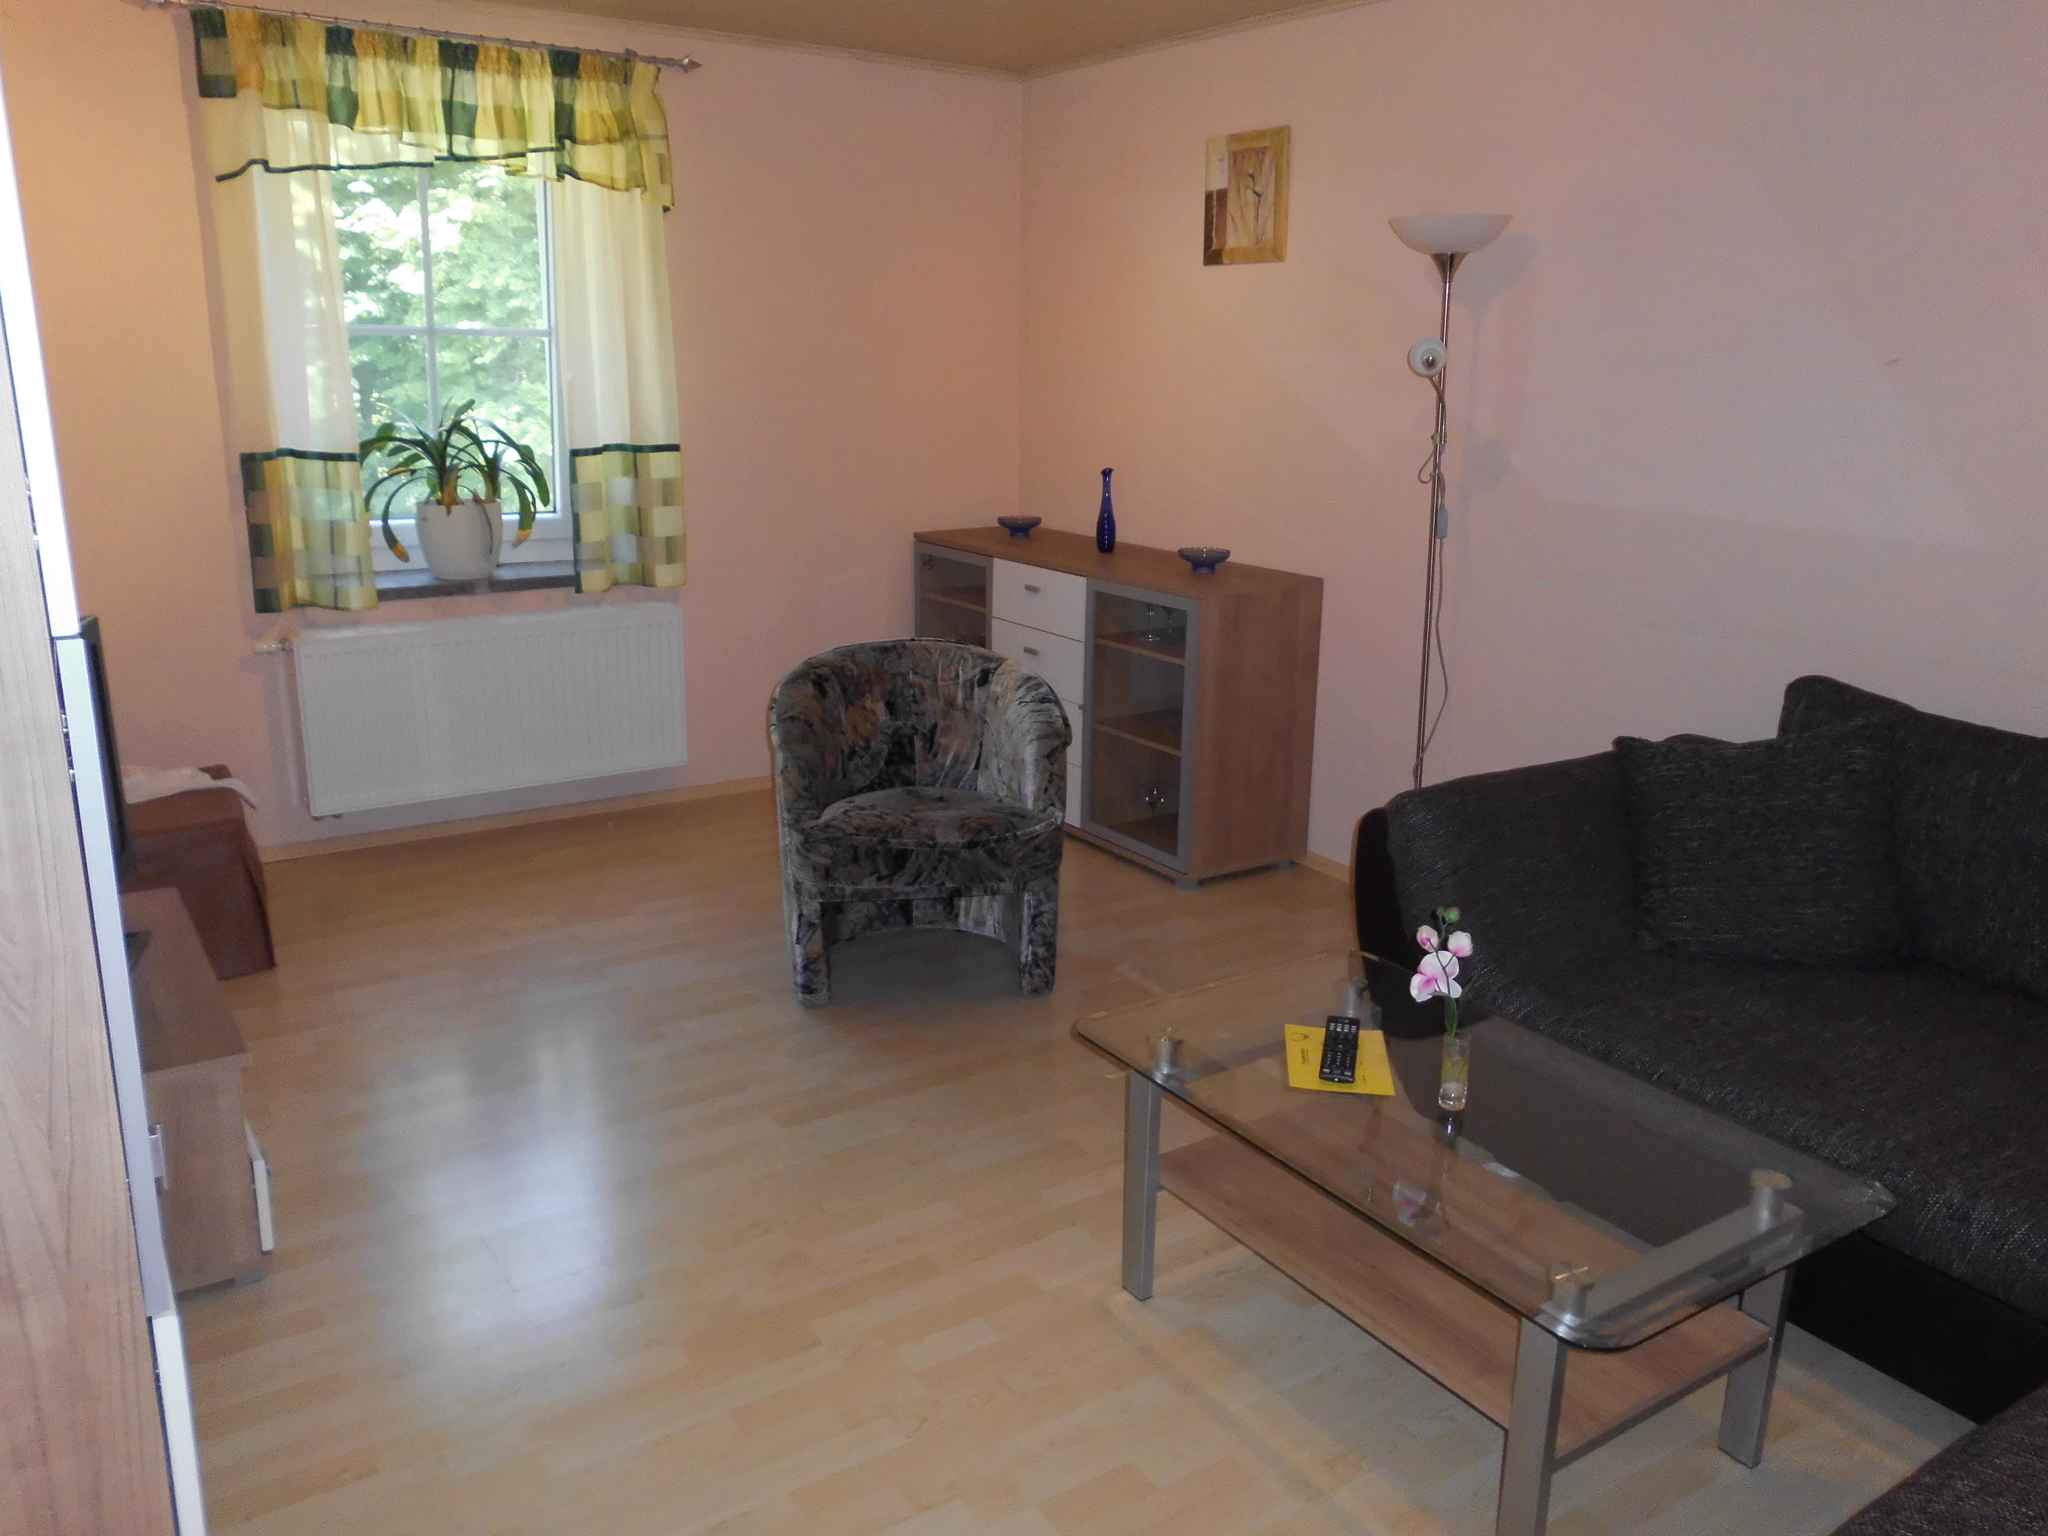 Holiday apartment in ruhiger Waldrandlage (322516), Sayda, The Ore Mountains, Saxony, Germany, picture 14